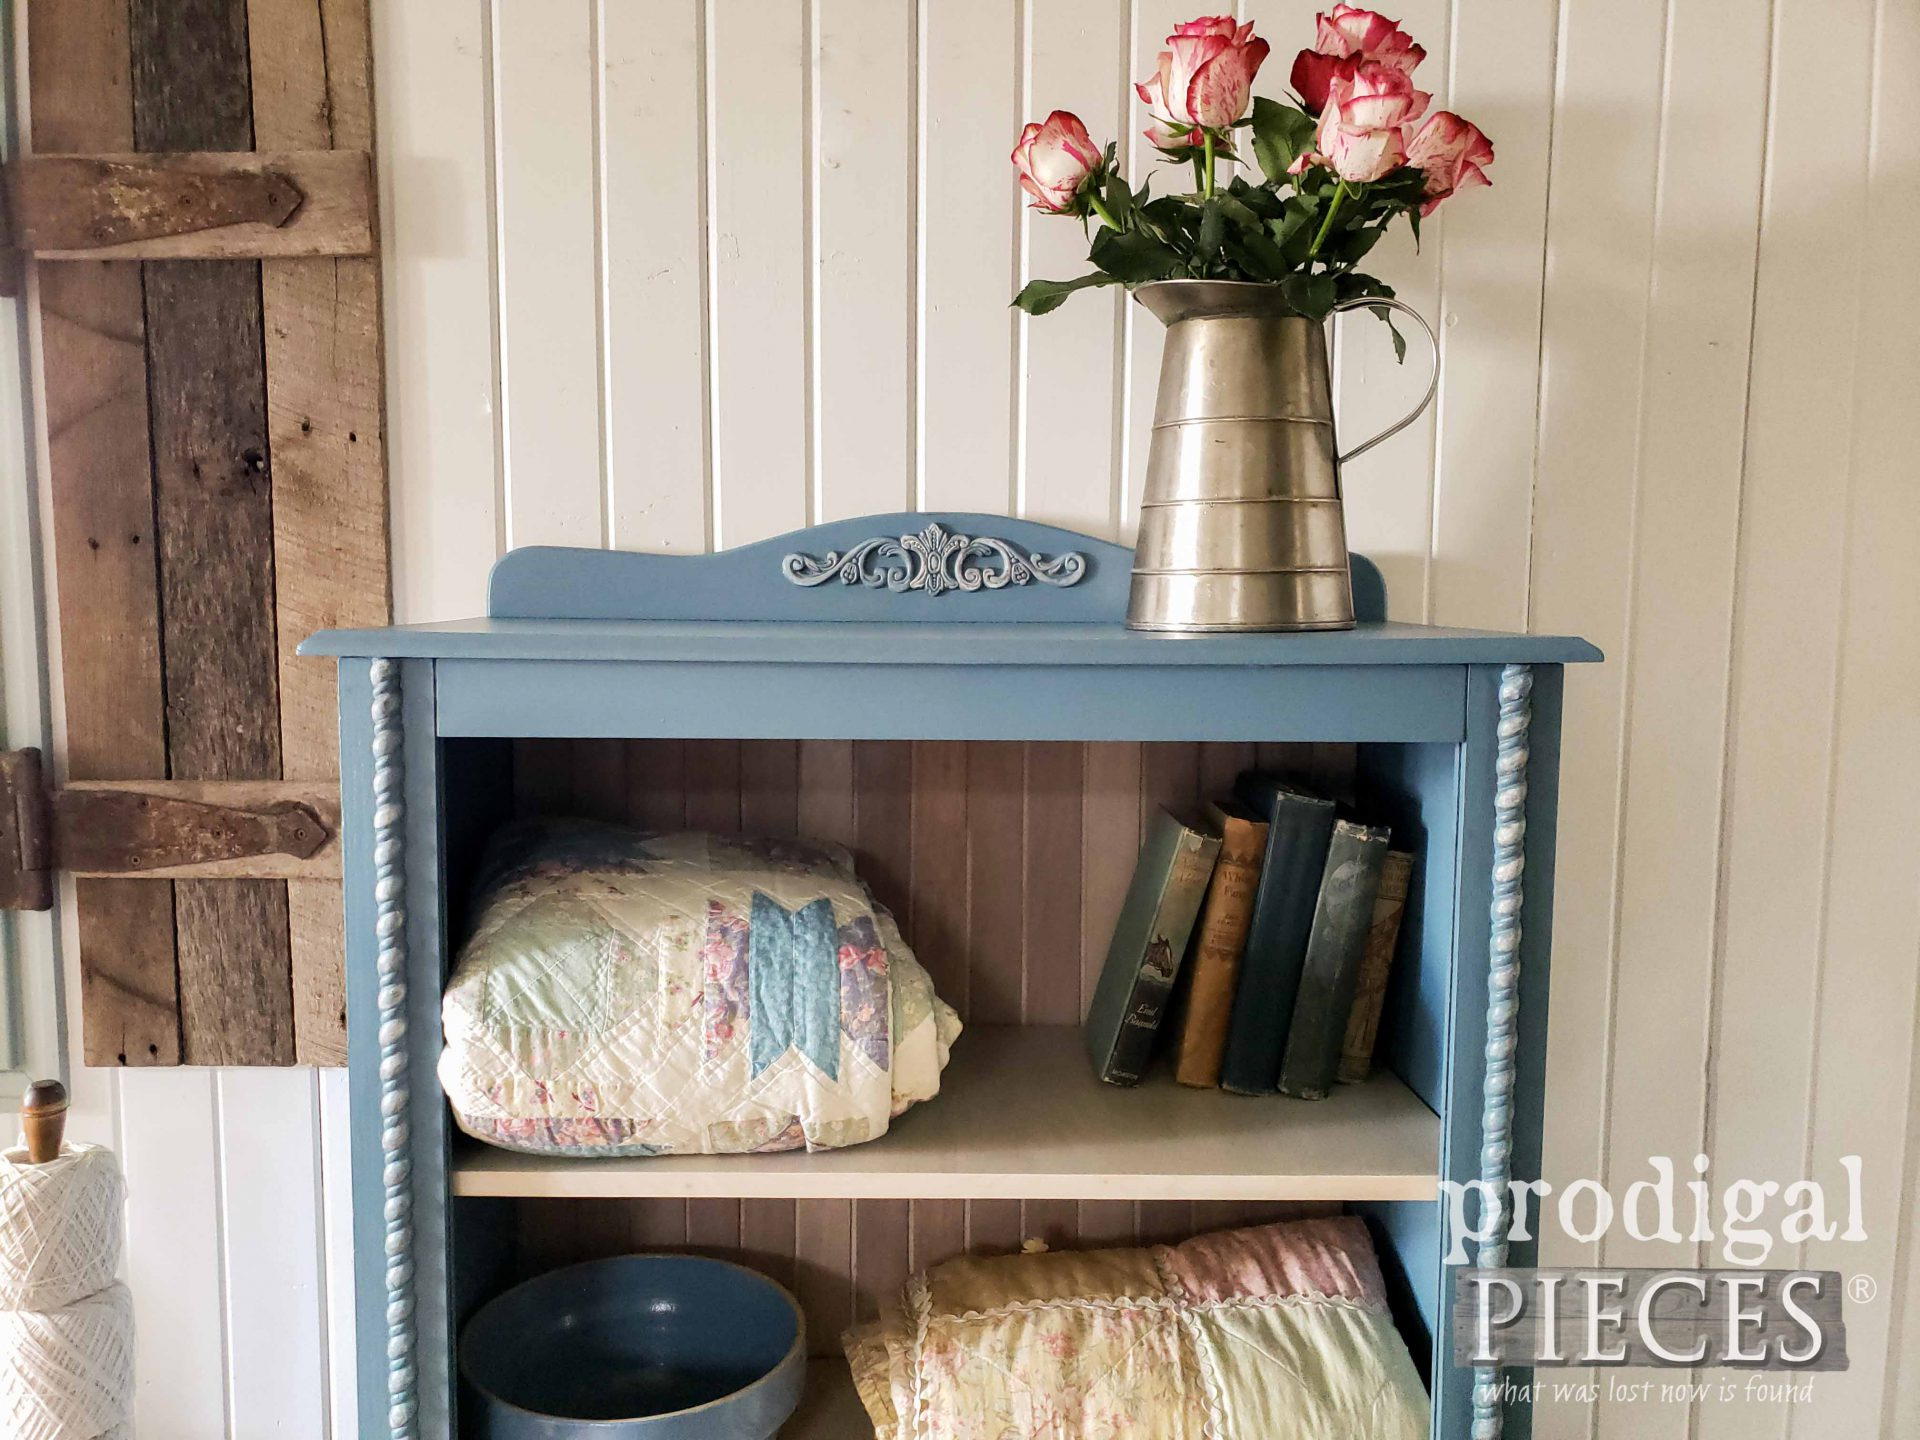 Repurposed Cabinet Top in Blue | prodigalpieces.com #prodigalpieces #diy #furniture #home #homedecor